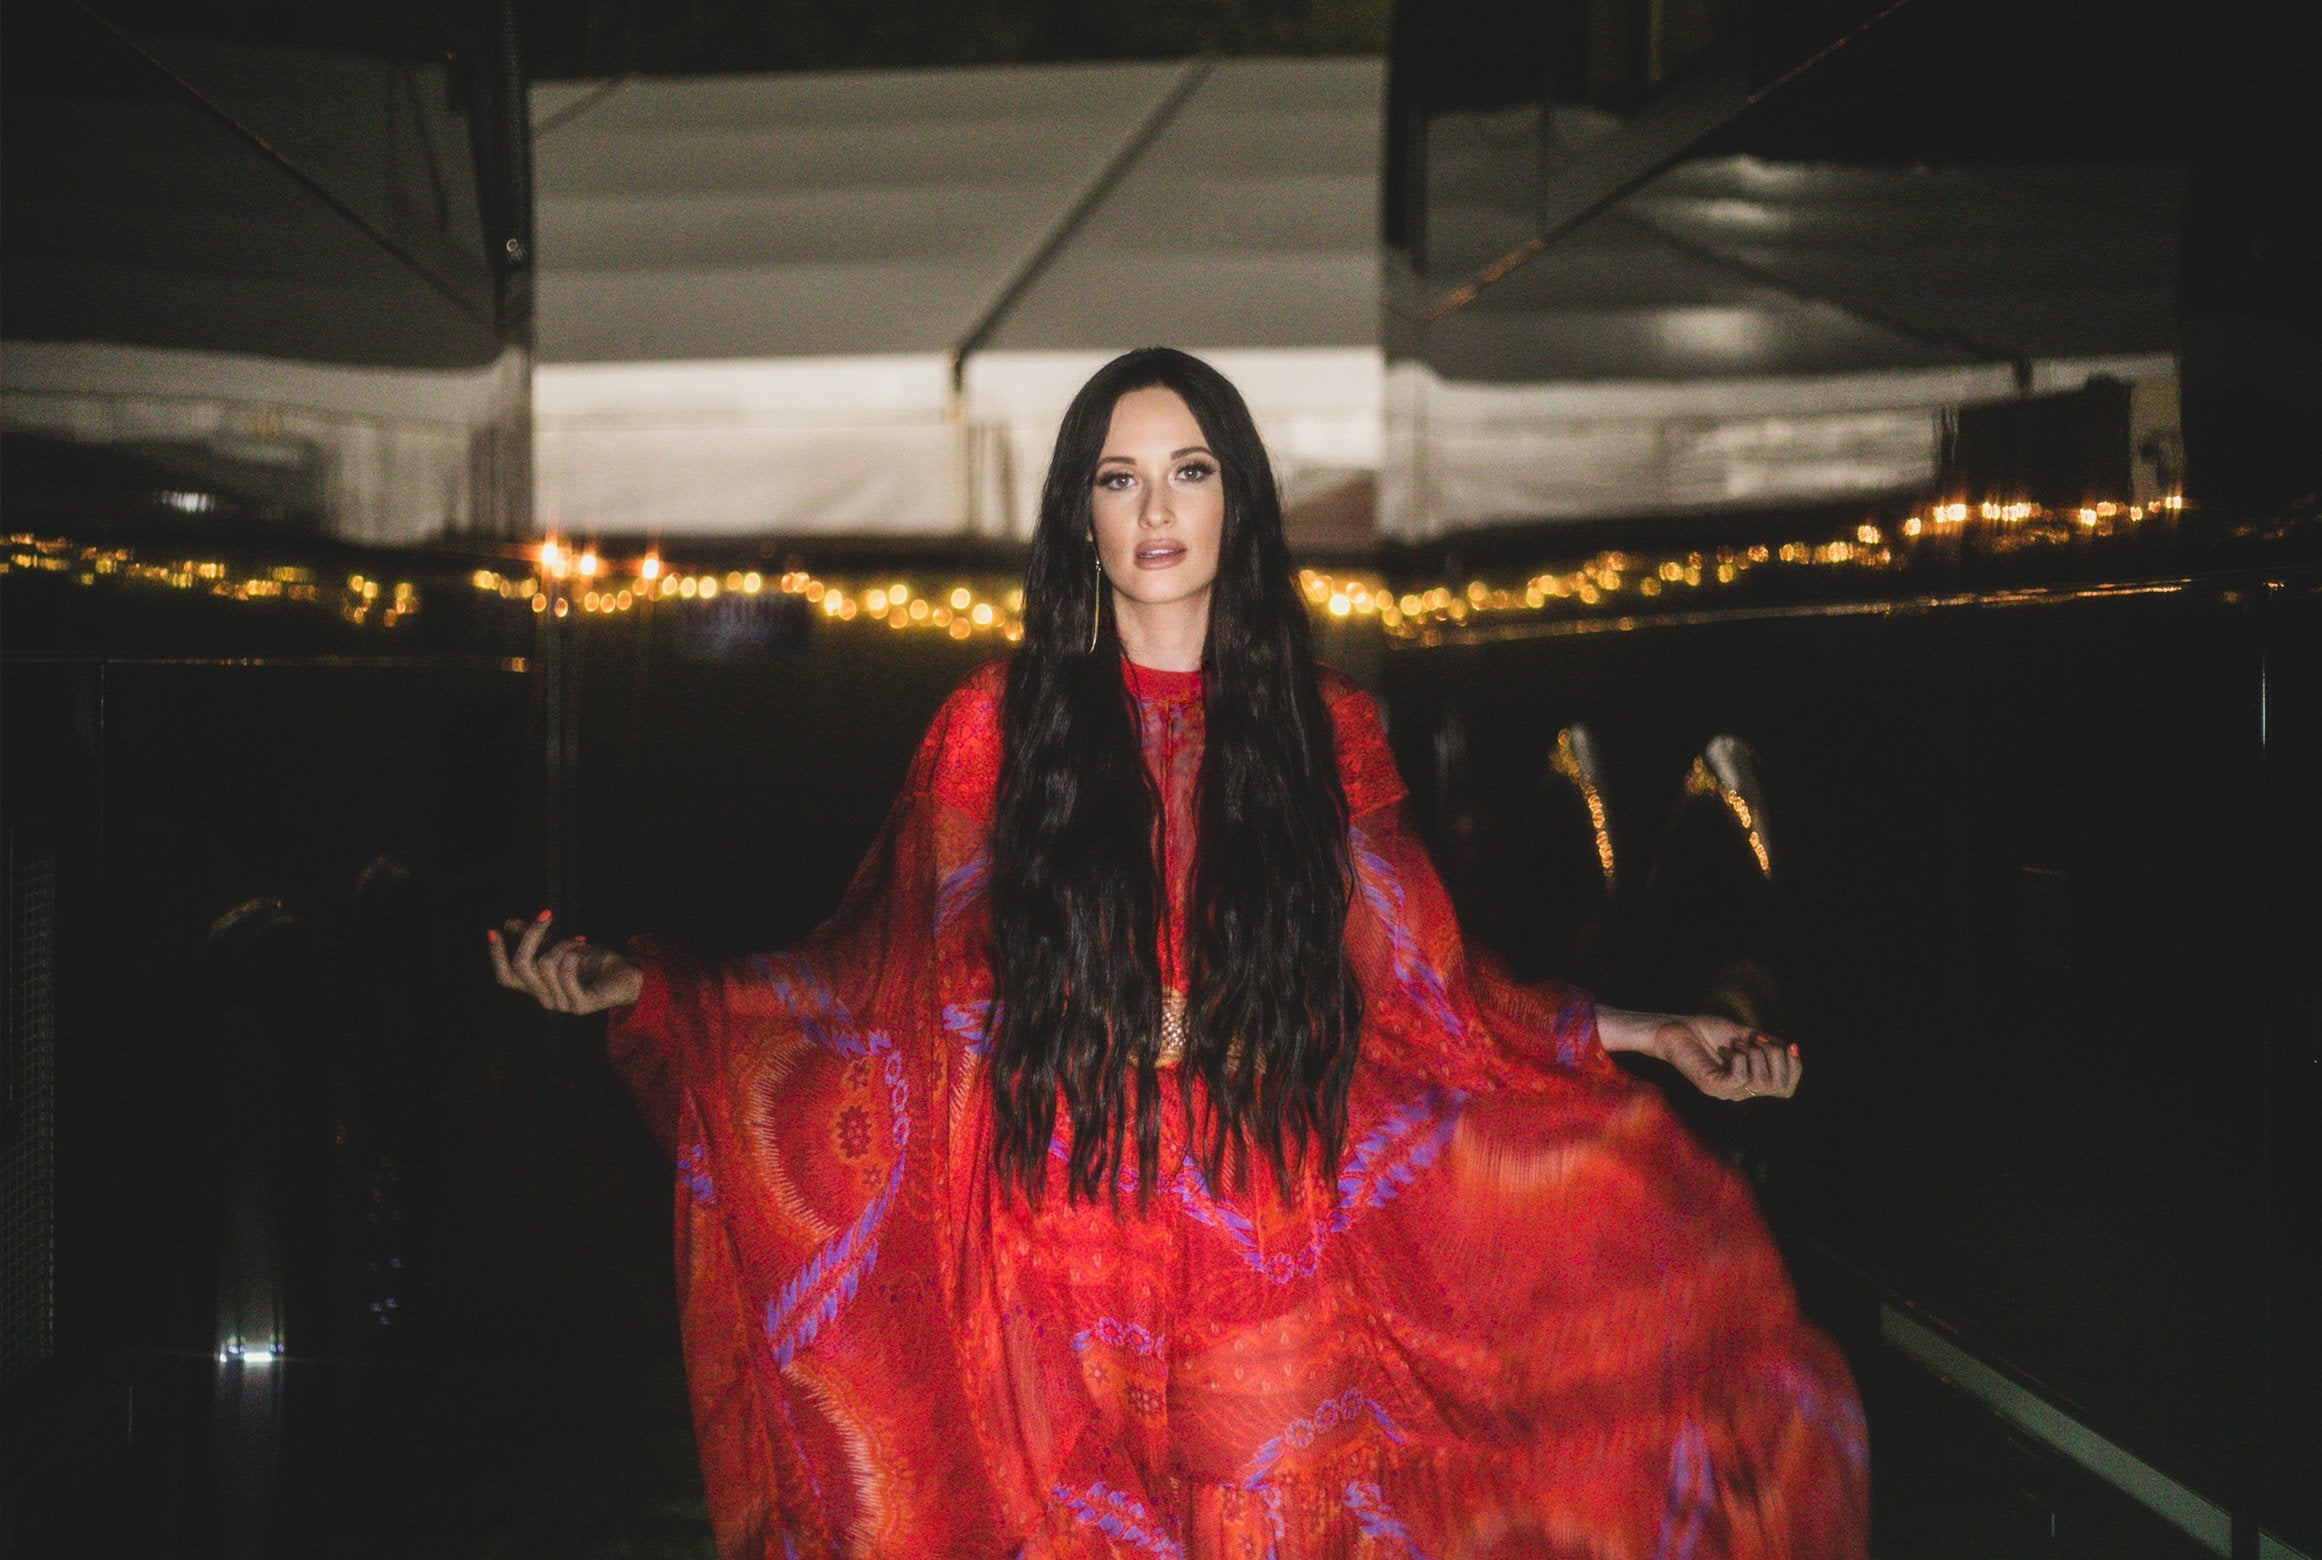 How-to get Kacey Musgraves Cult Vibes Summer Hair